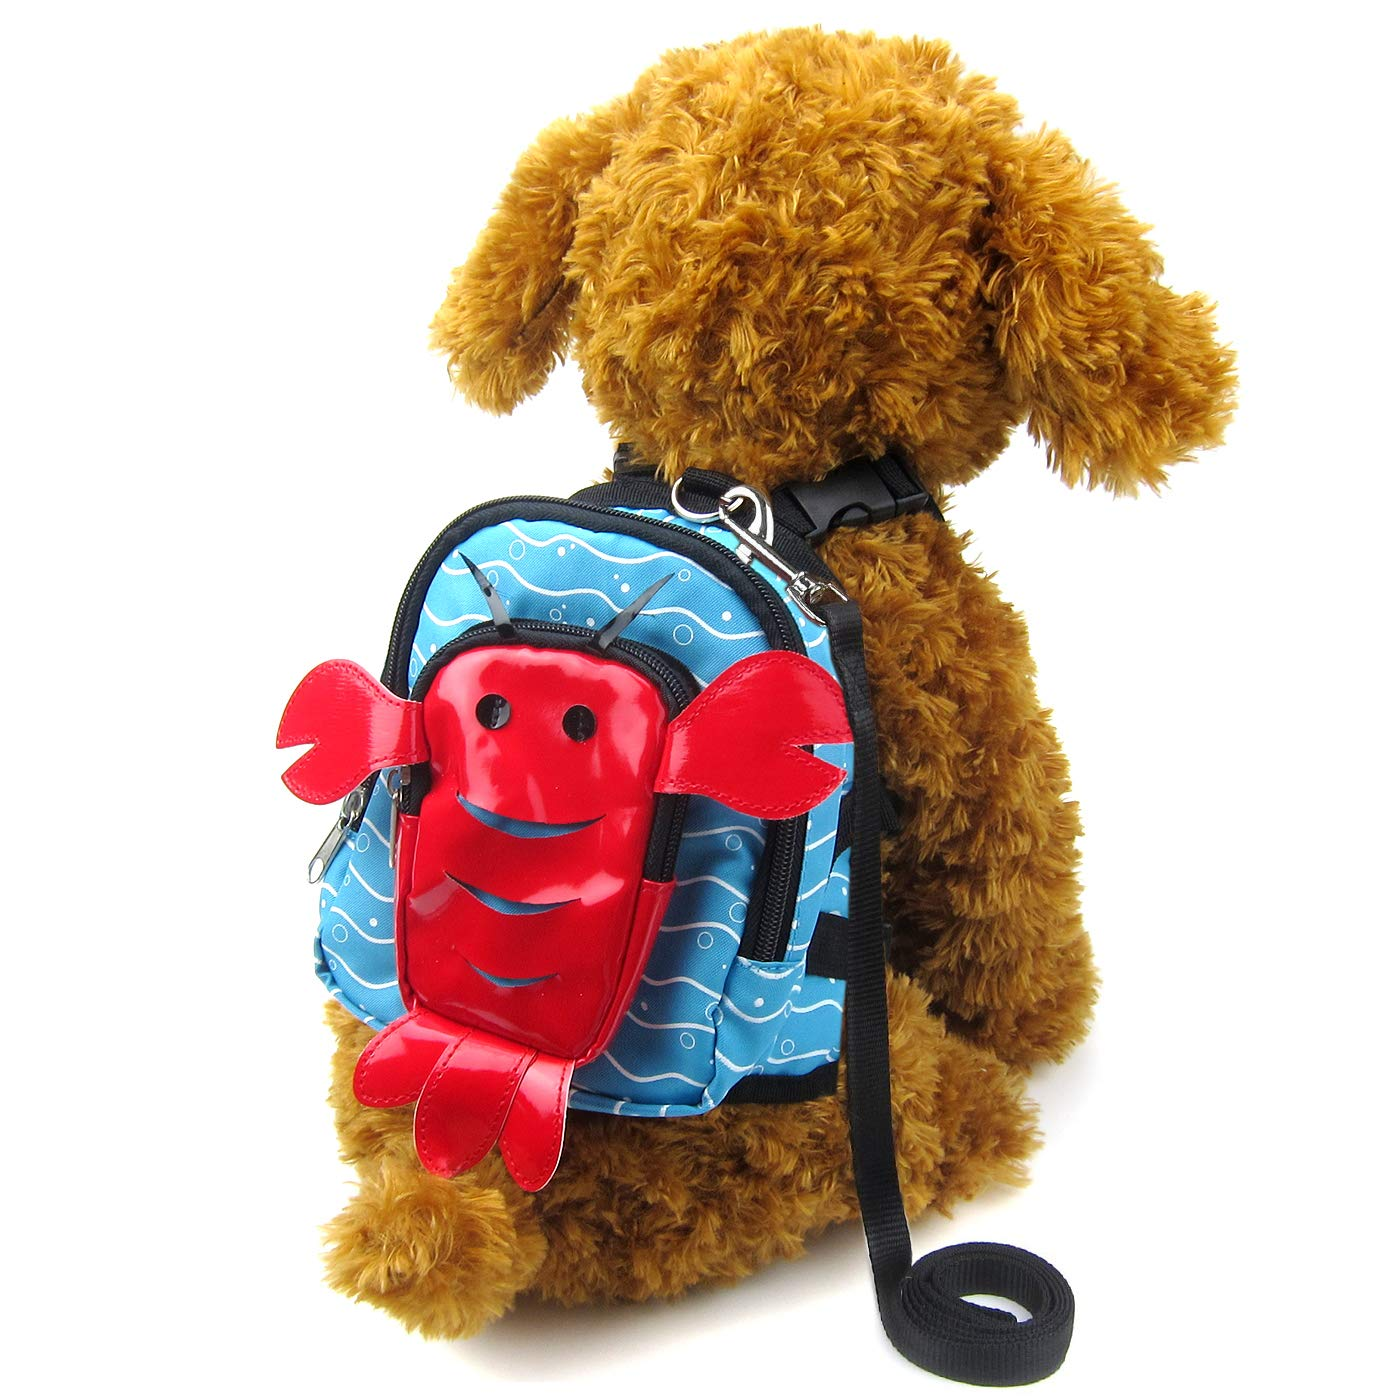 Lobster Small Lobster Small Alfie Pet Oliga Backpack Harness with Leash Set color  Red Lobster, Size  Small